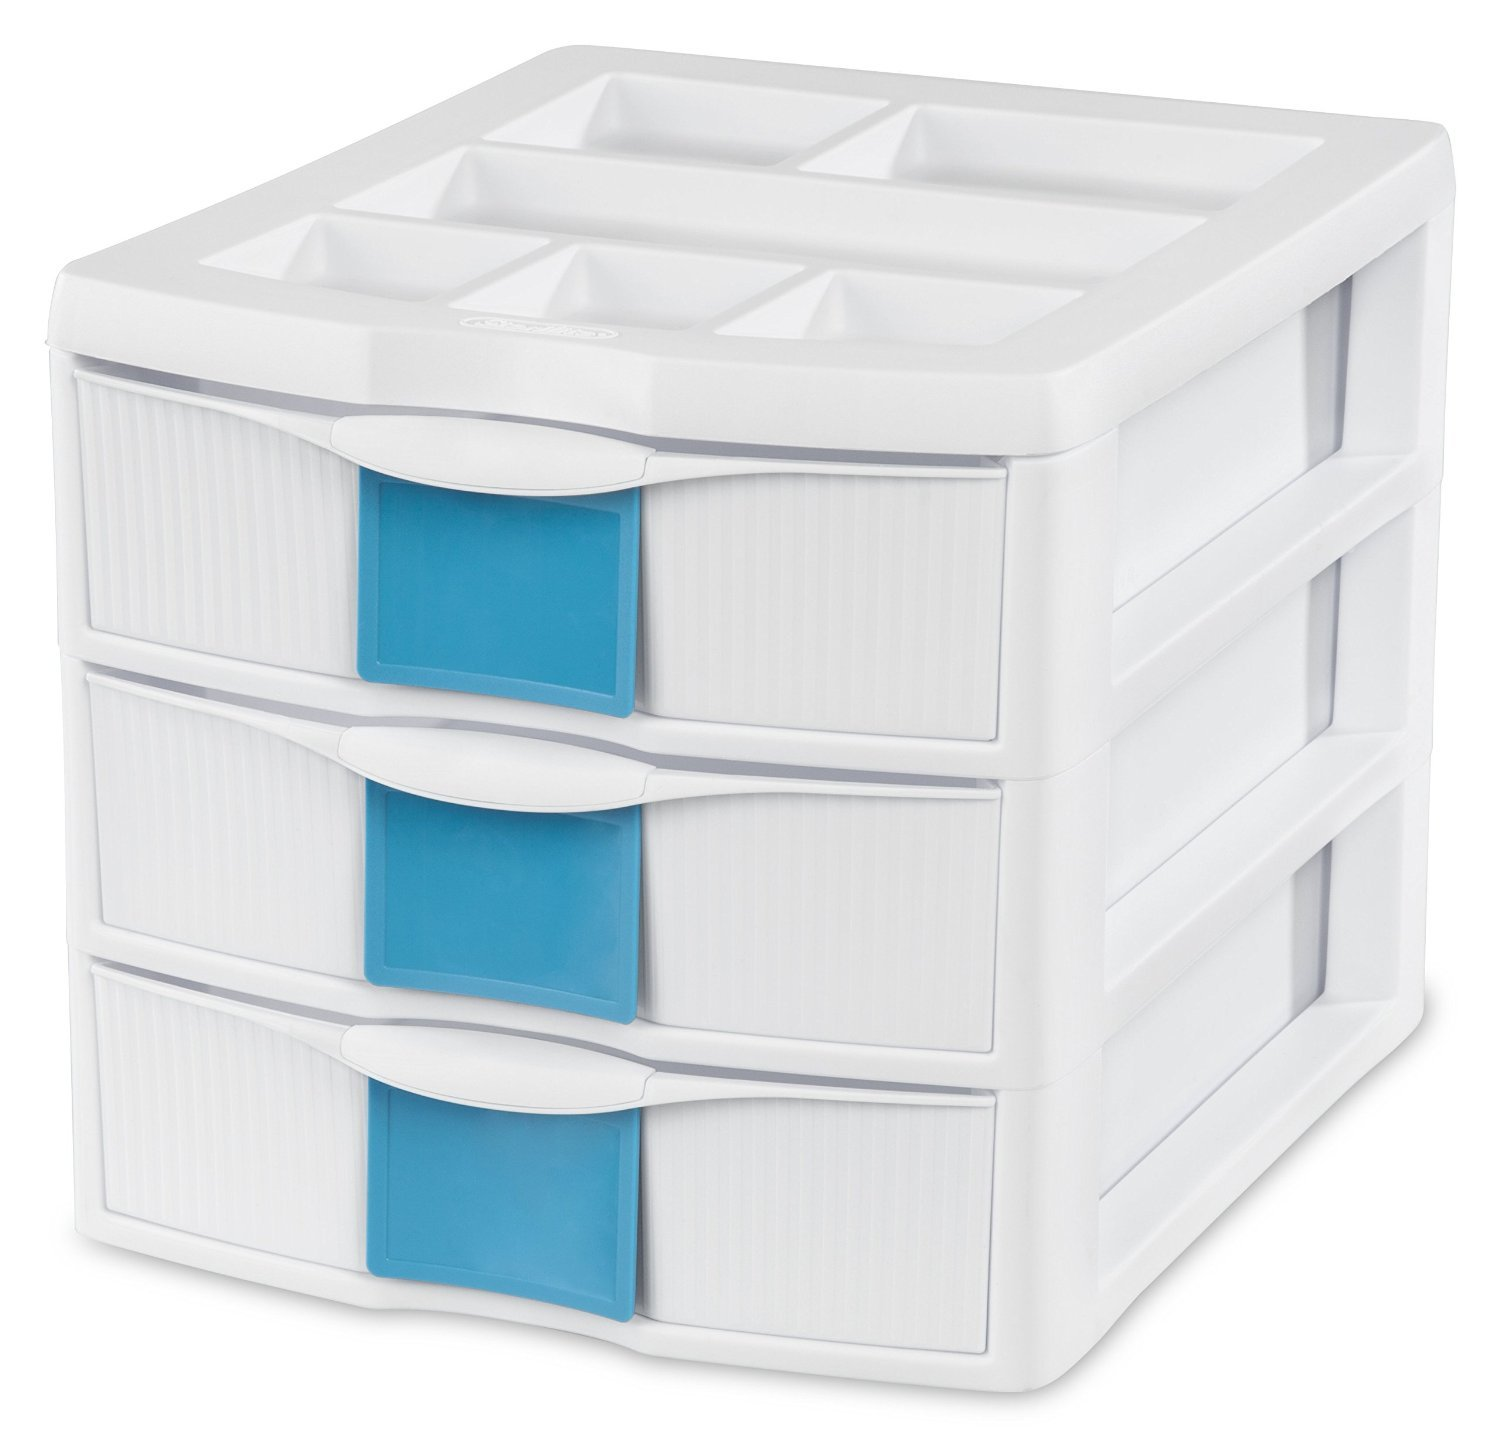 view pack model pull in out us open rat units unit guard drawer storage weather pi en x